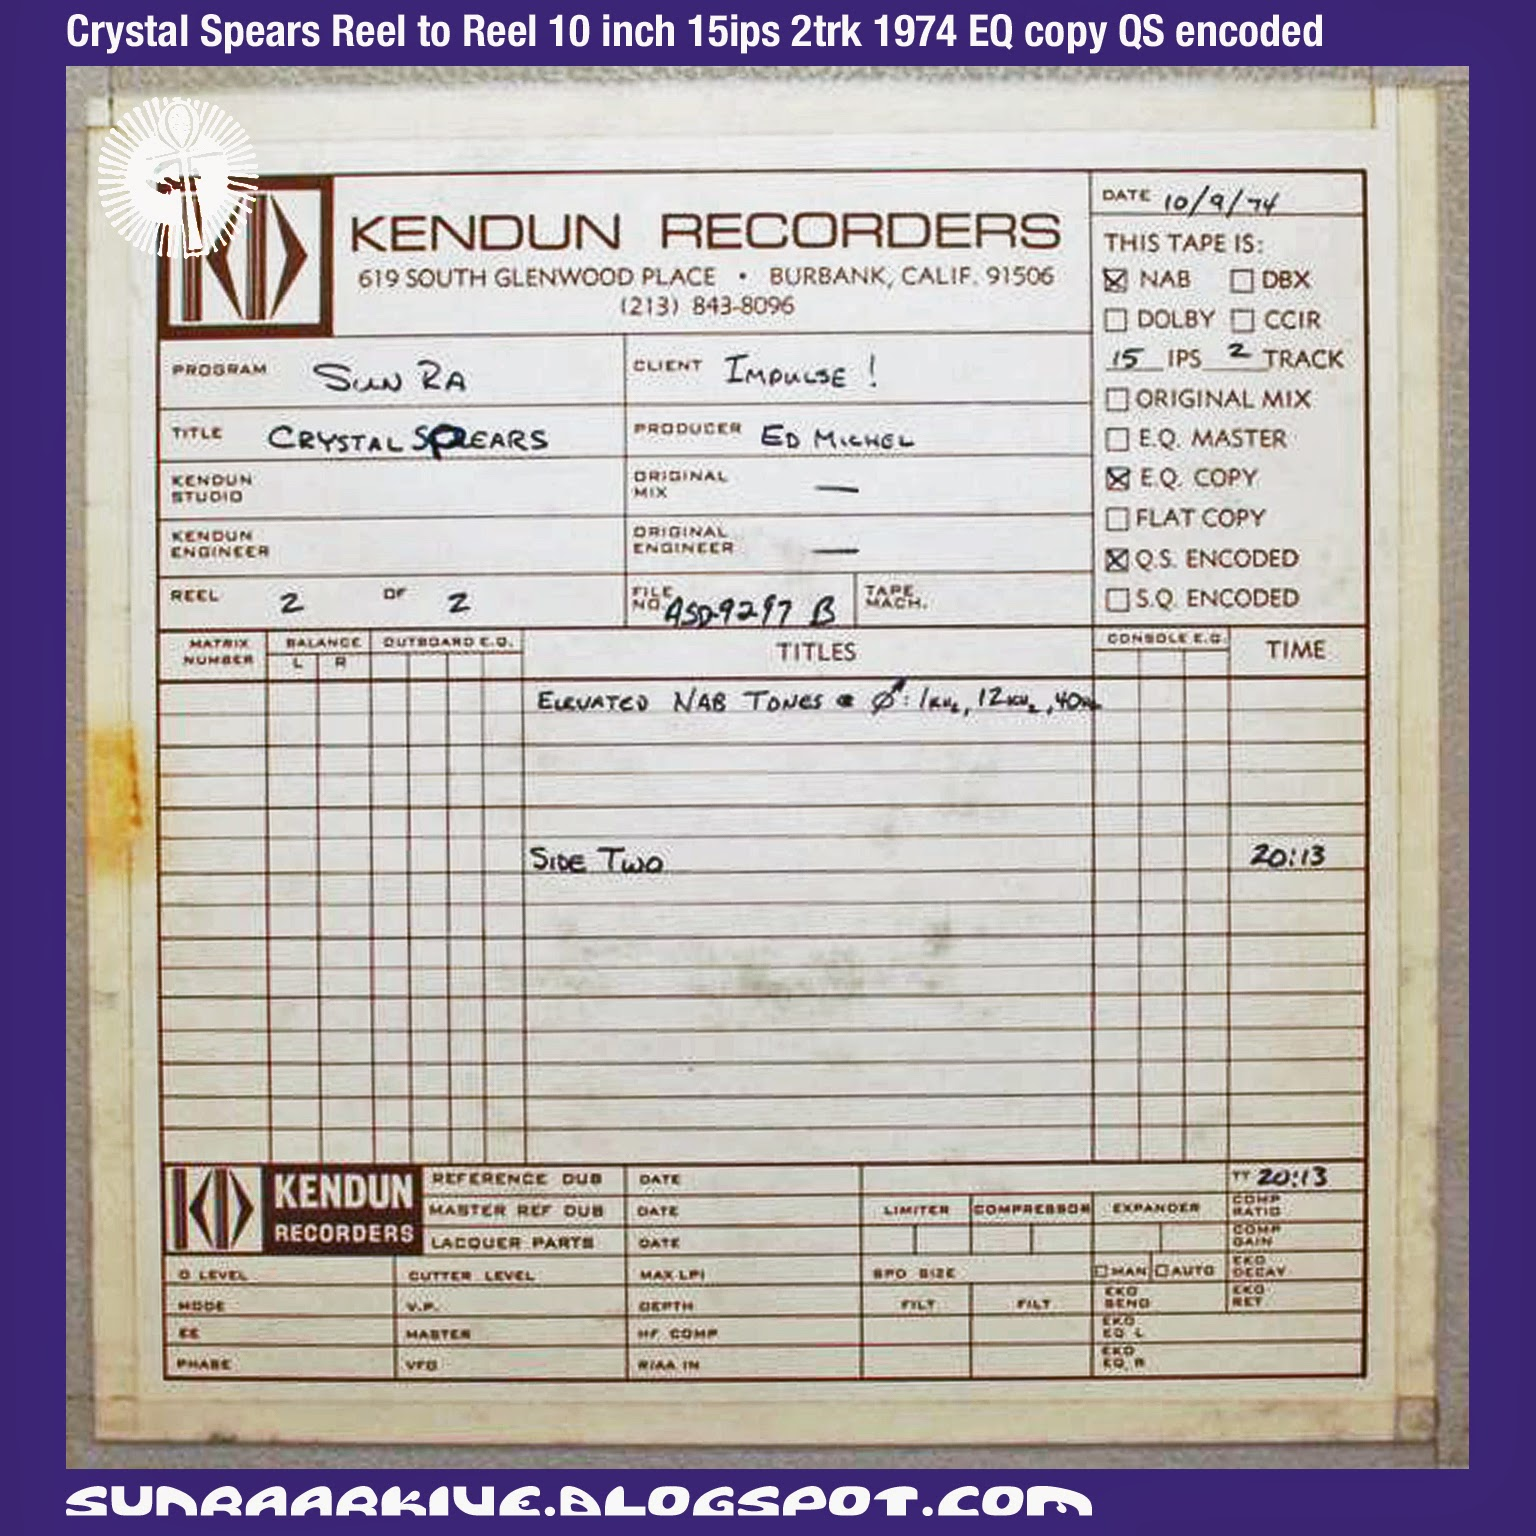 Sun Ra Arkive: Sun Ra Reel To Reel Master Tapes from Ebay - Crystal Spears Reel to Reel 10 inch 15ips 2trk 1974 EQ copy QS encoded